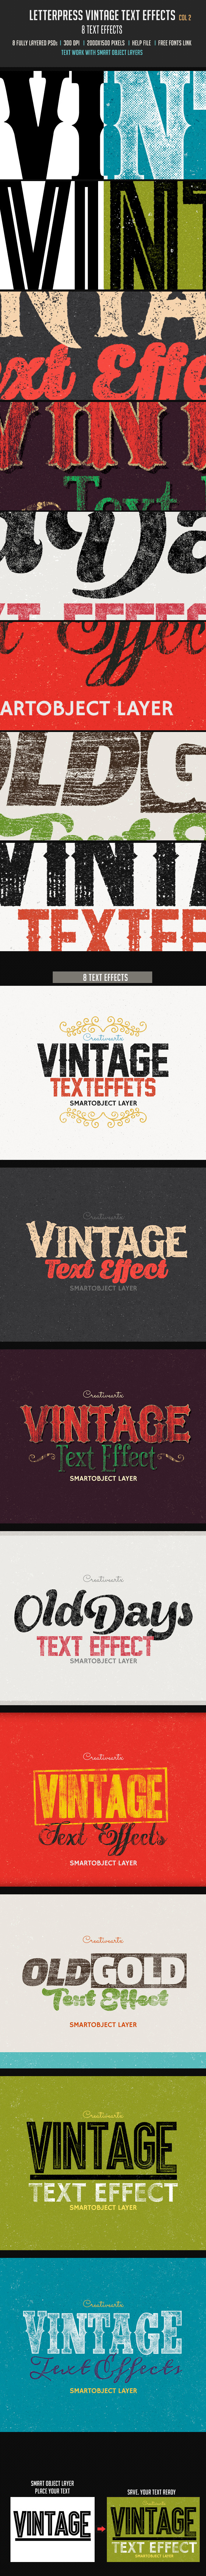 Letterpress Vintage Text Effects 2 - Text Effects Actions